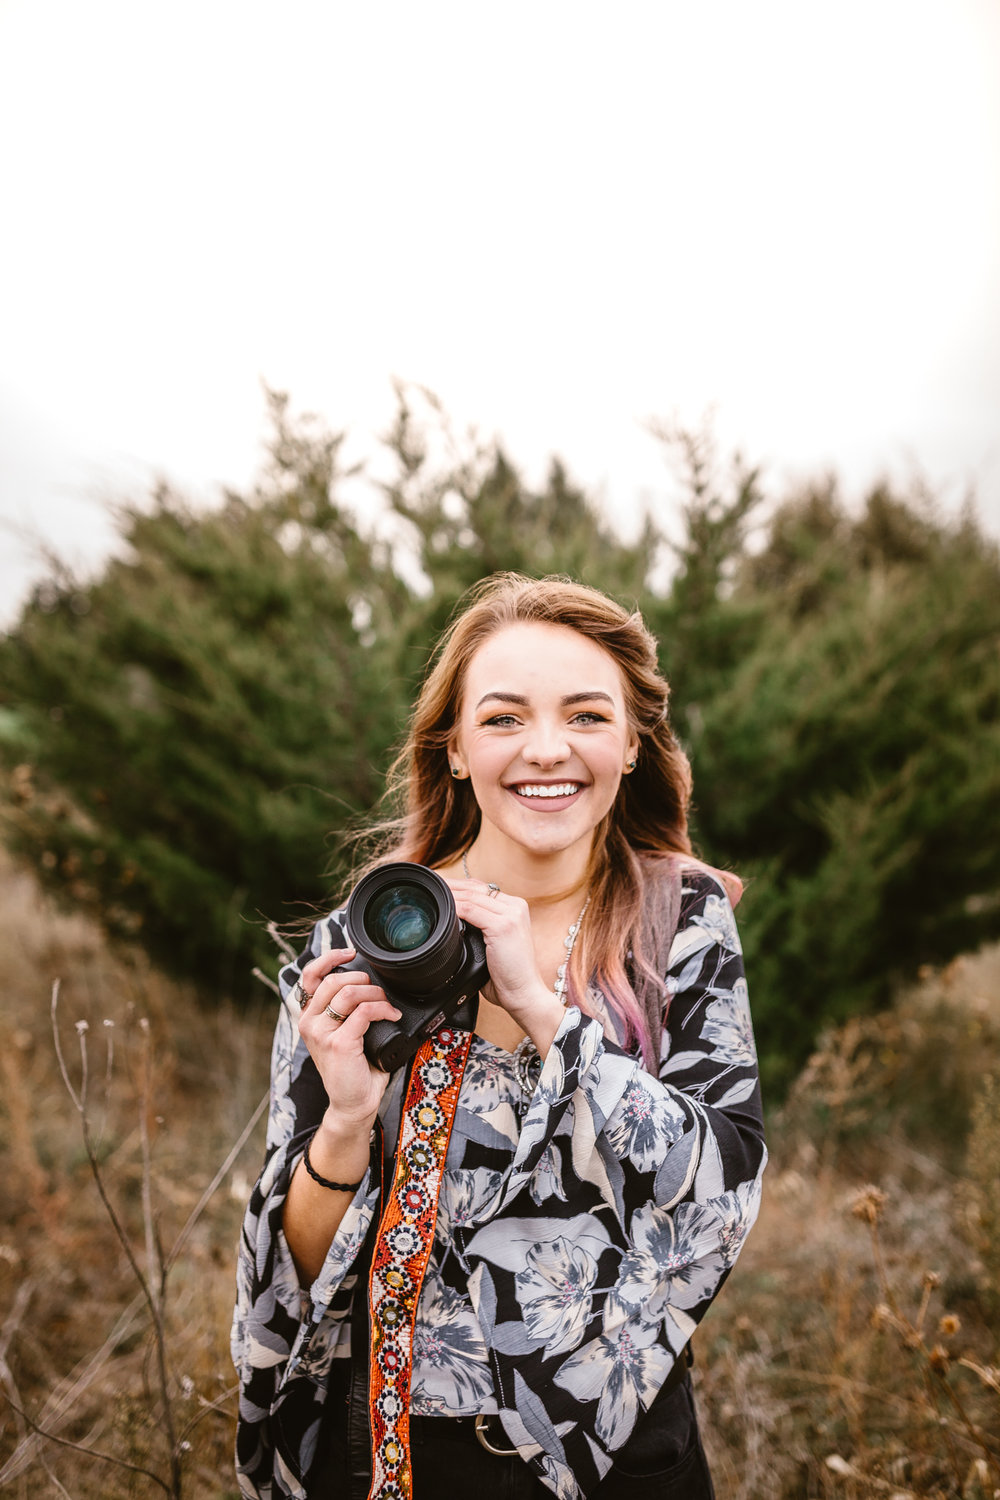 Hi! I'm Hannah Sanderson, & I wanna take your picture! - I love lots of things…music, snowboarding, watching 'The Office', and....taking unique, one of a kind photographs of people that they get to cherish forever!I knew I wanted to be a photographer the day I took photos for a family friend (only because I knew how to use a camera) -- and noticed their reaction towards receiving the pictures. It wasn't just a